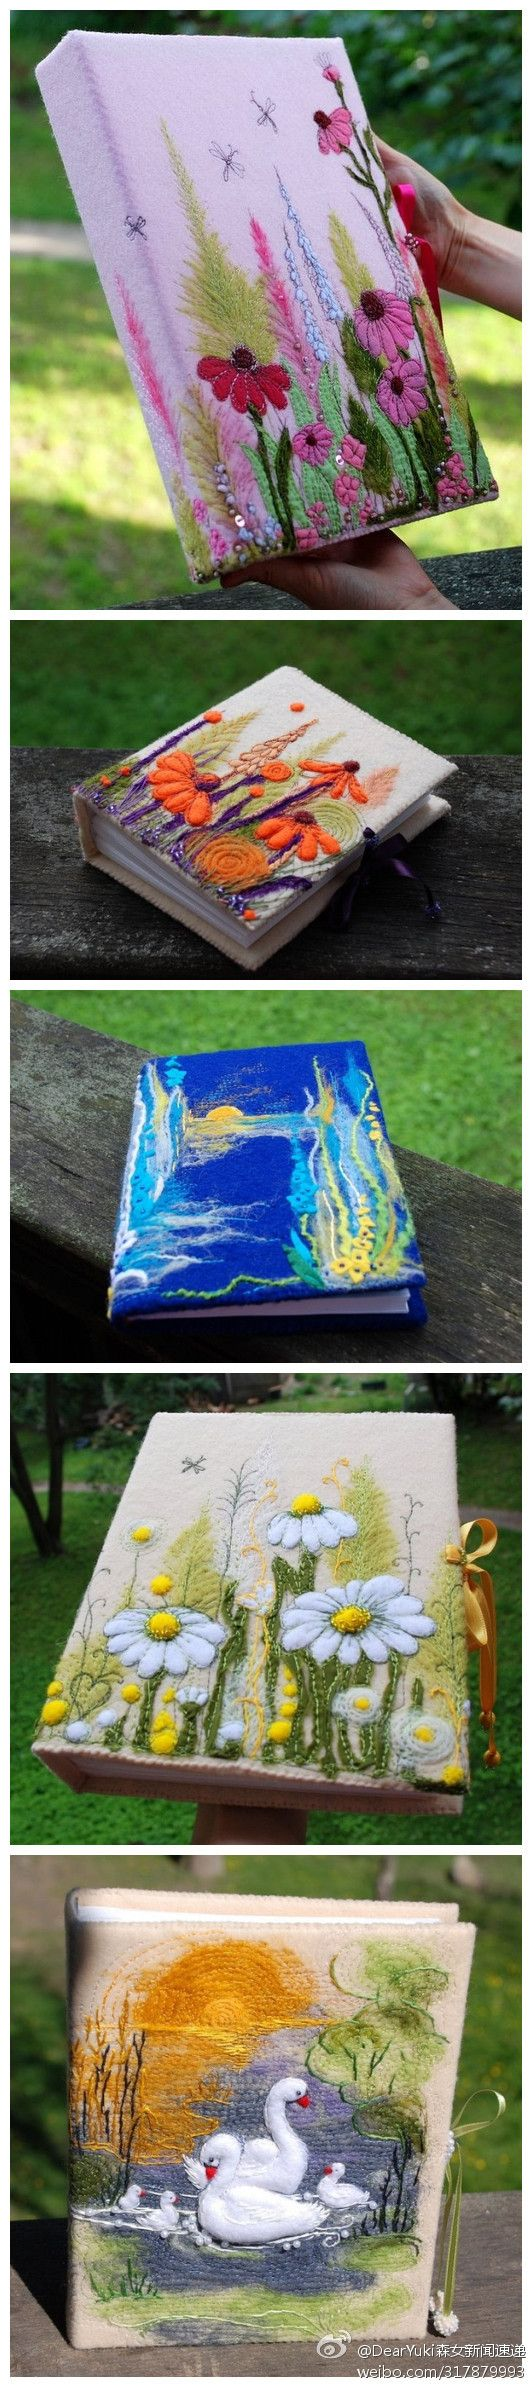 Beautiful idea with the canvas